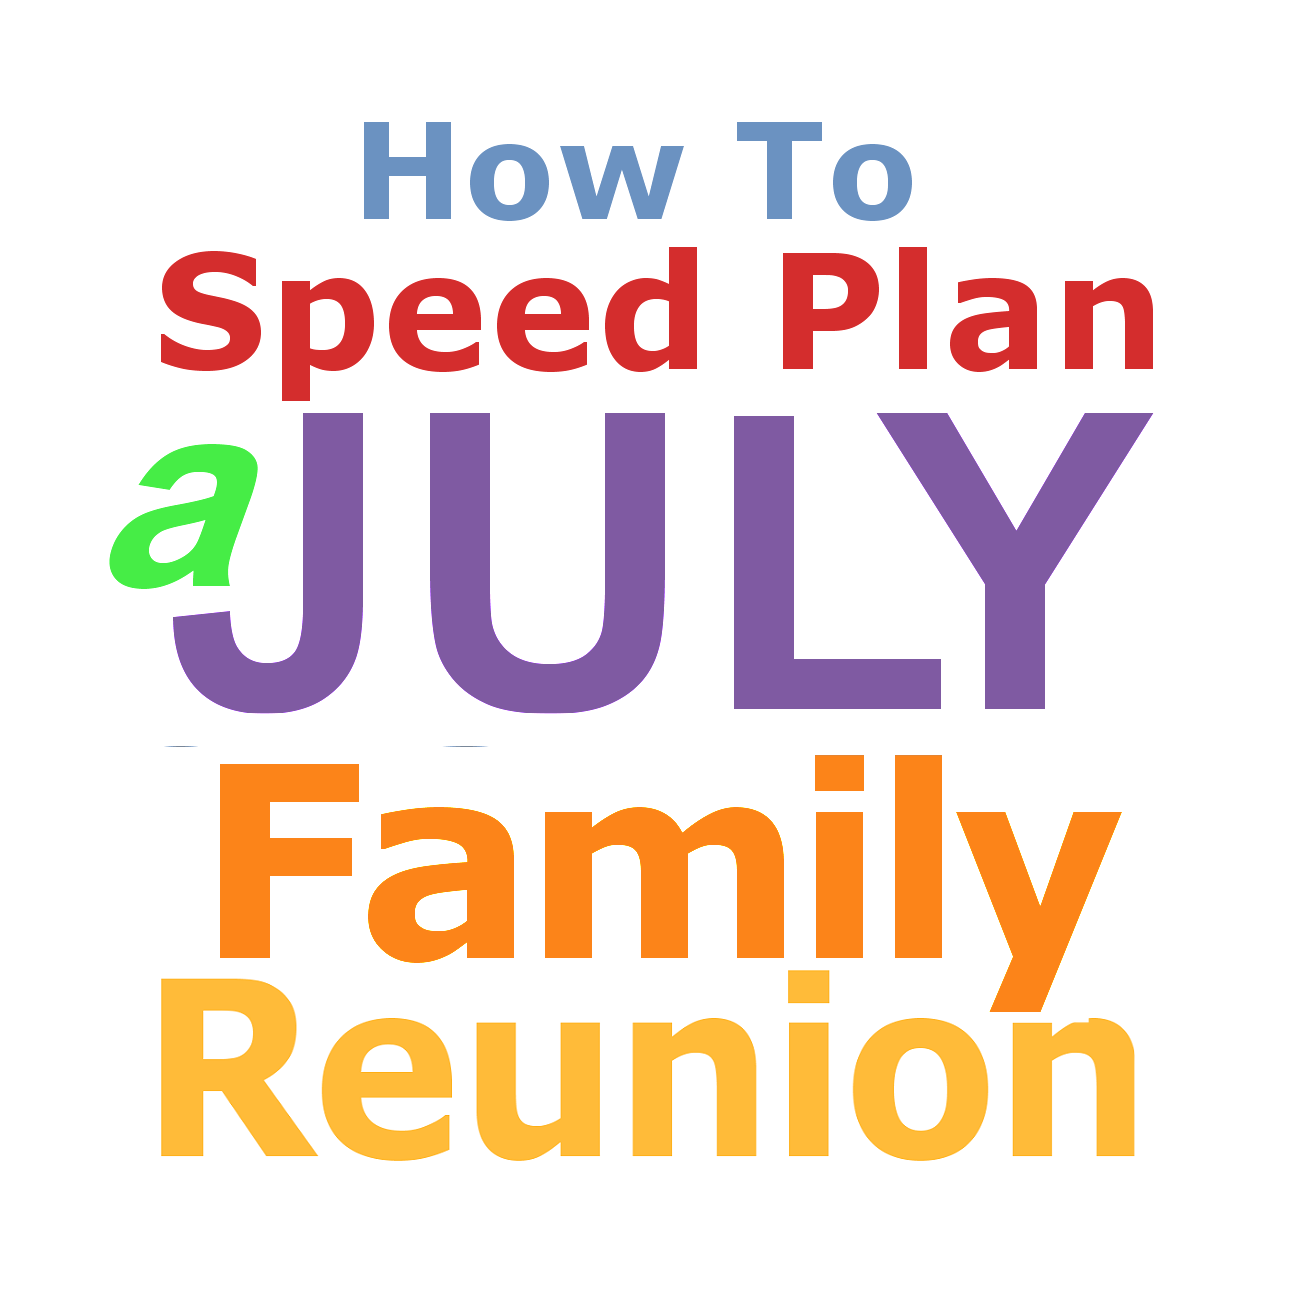 Family Reunion Planning Guides Apps And Books How To Speed Plan A July Family Reunion